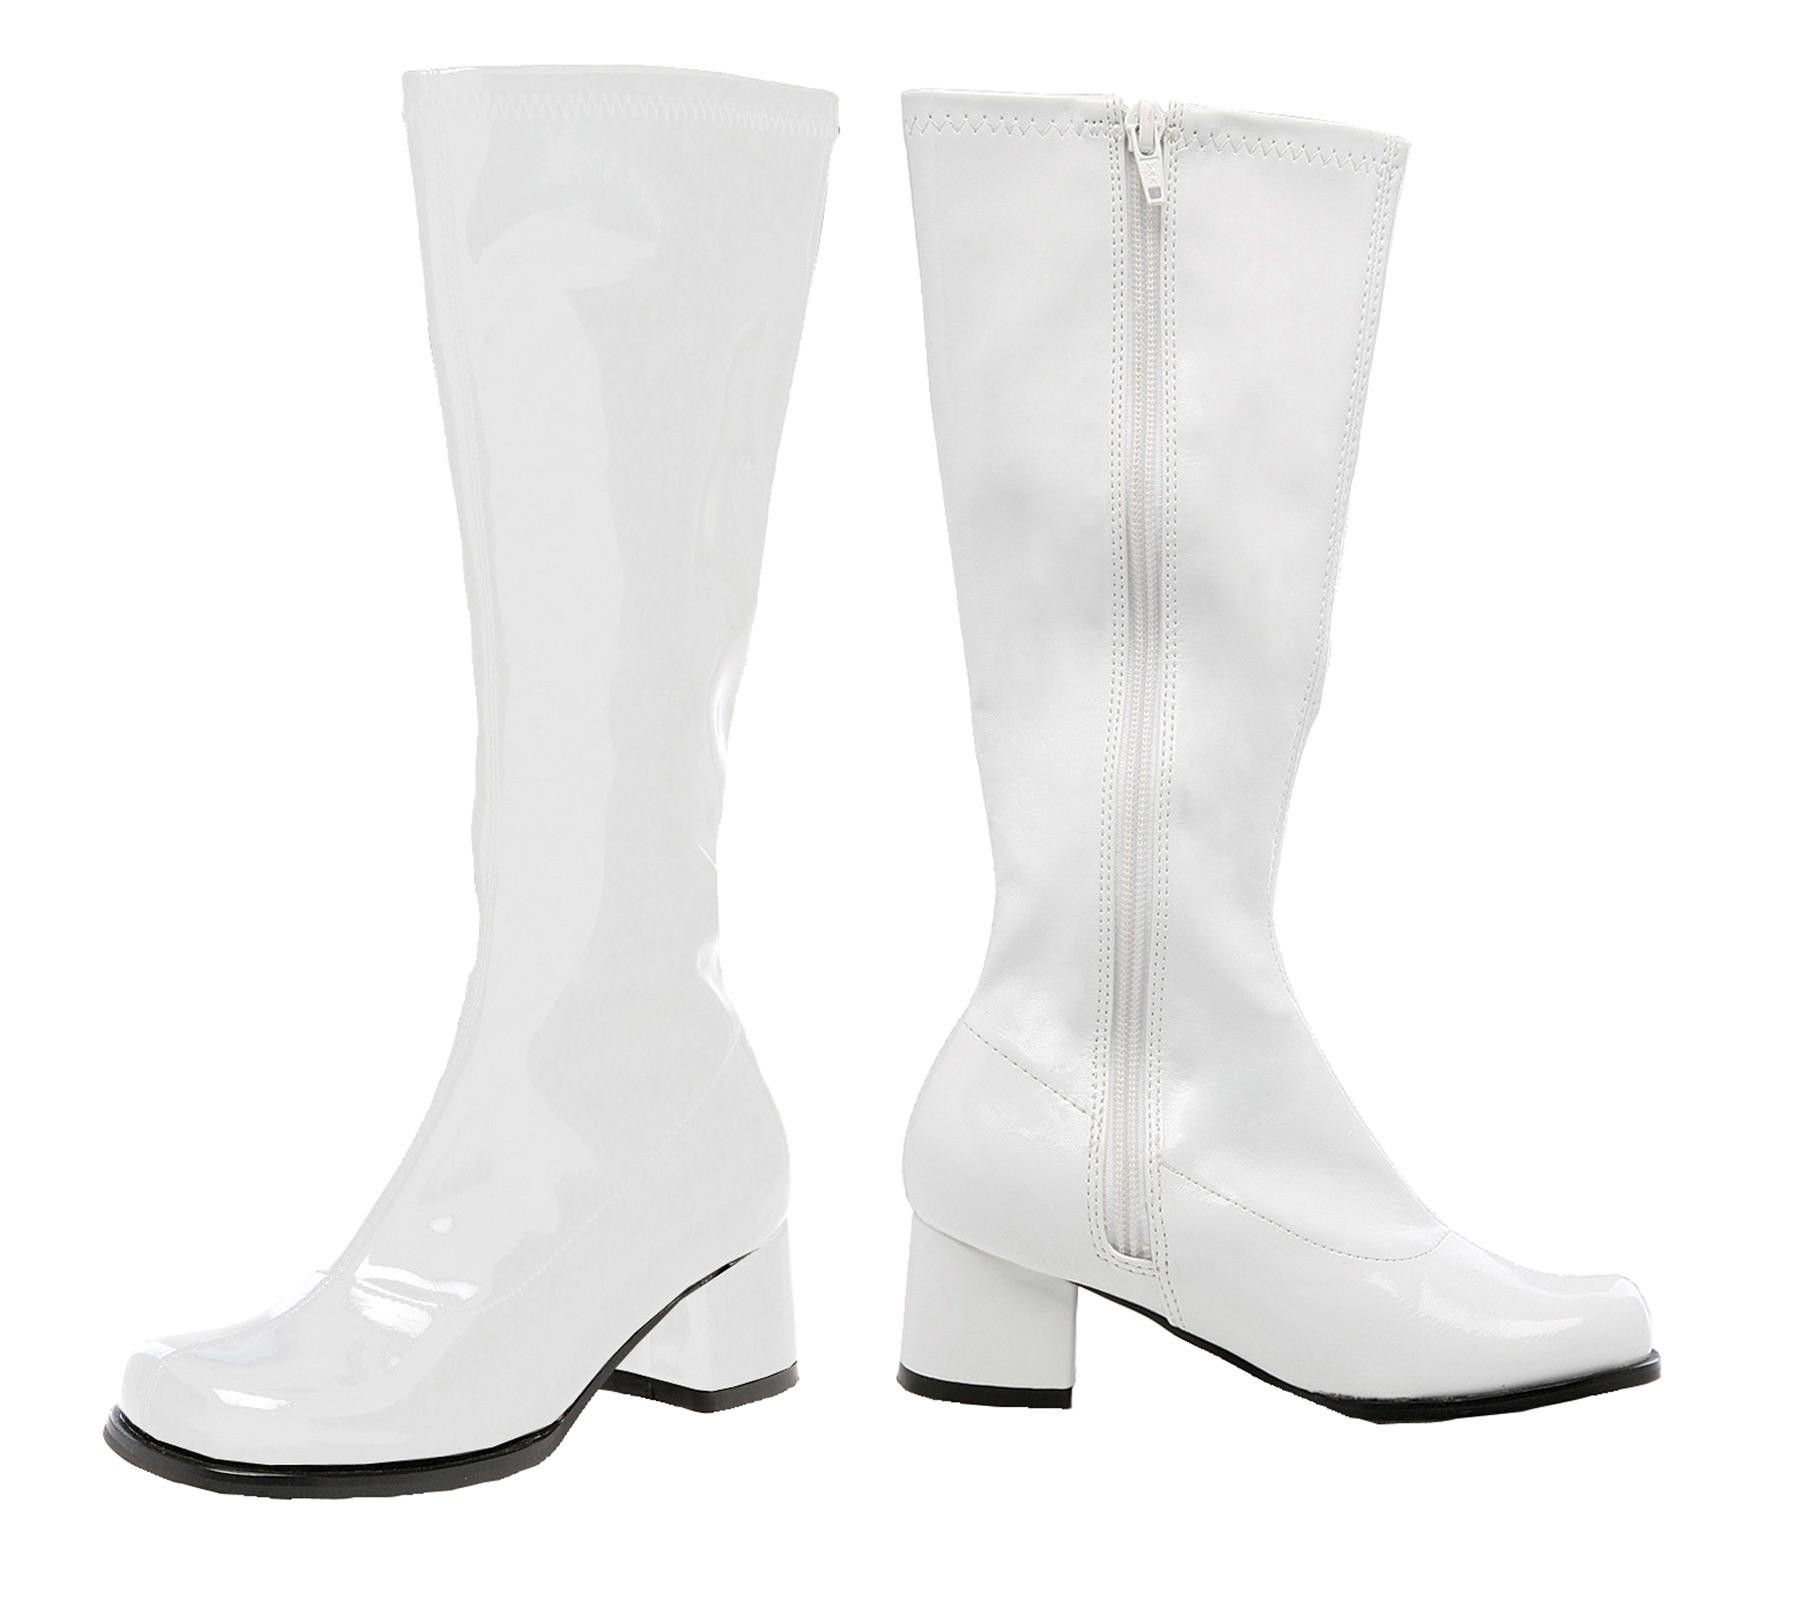 Go Go Boot Child Size 3 White | White gogo boots, Kids boots